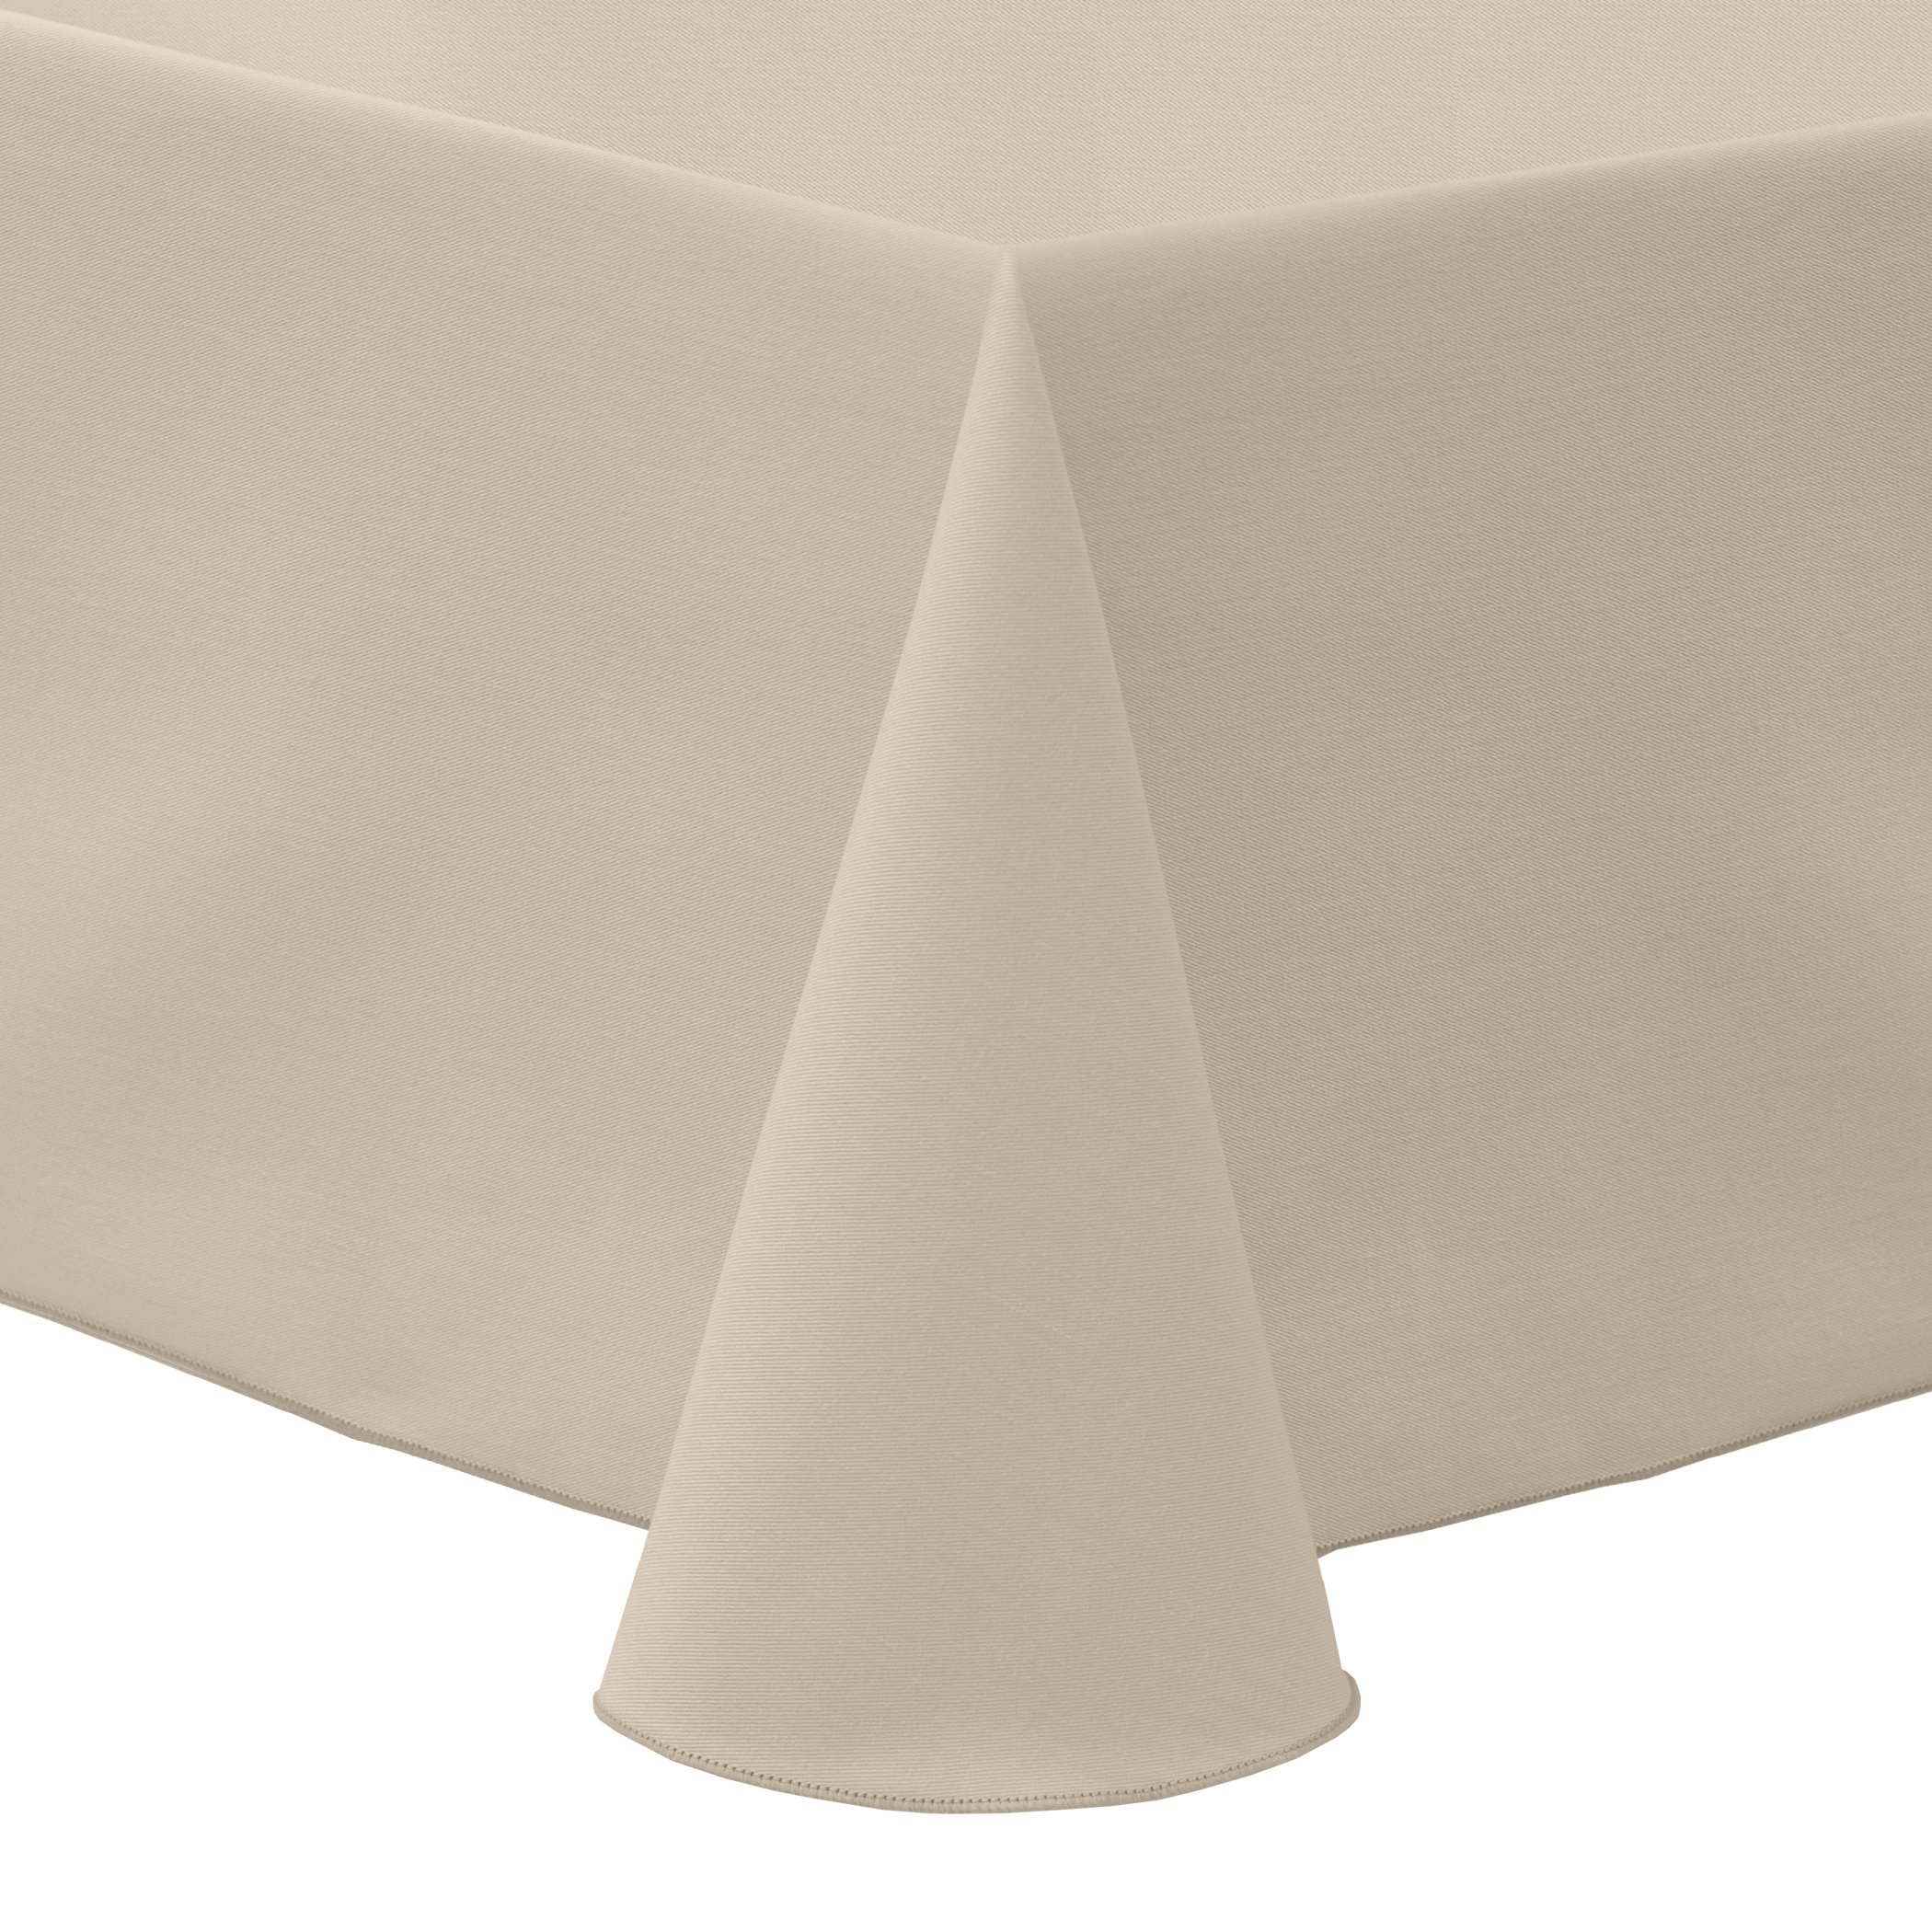 Ultimate Textile (3 Pack) Poly-cotton Twill 90 x 132-Inch Rectangular Tablecloth - for Restaurant and Catering, Hotel or Home Dining use, Beige